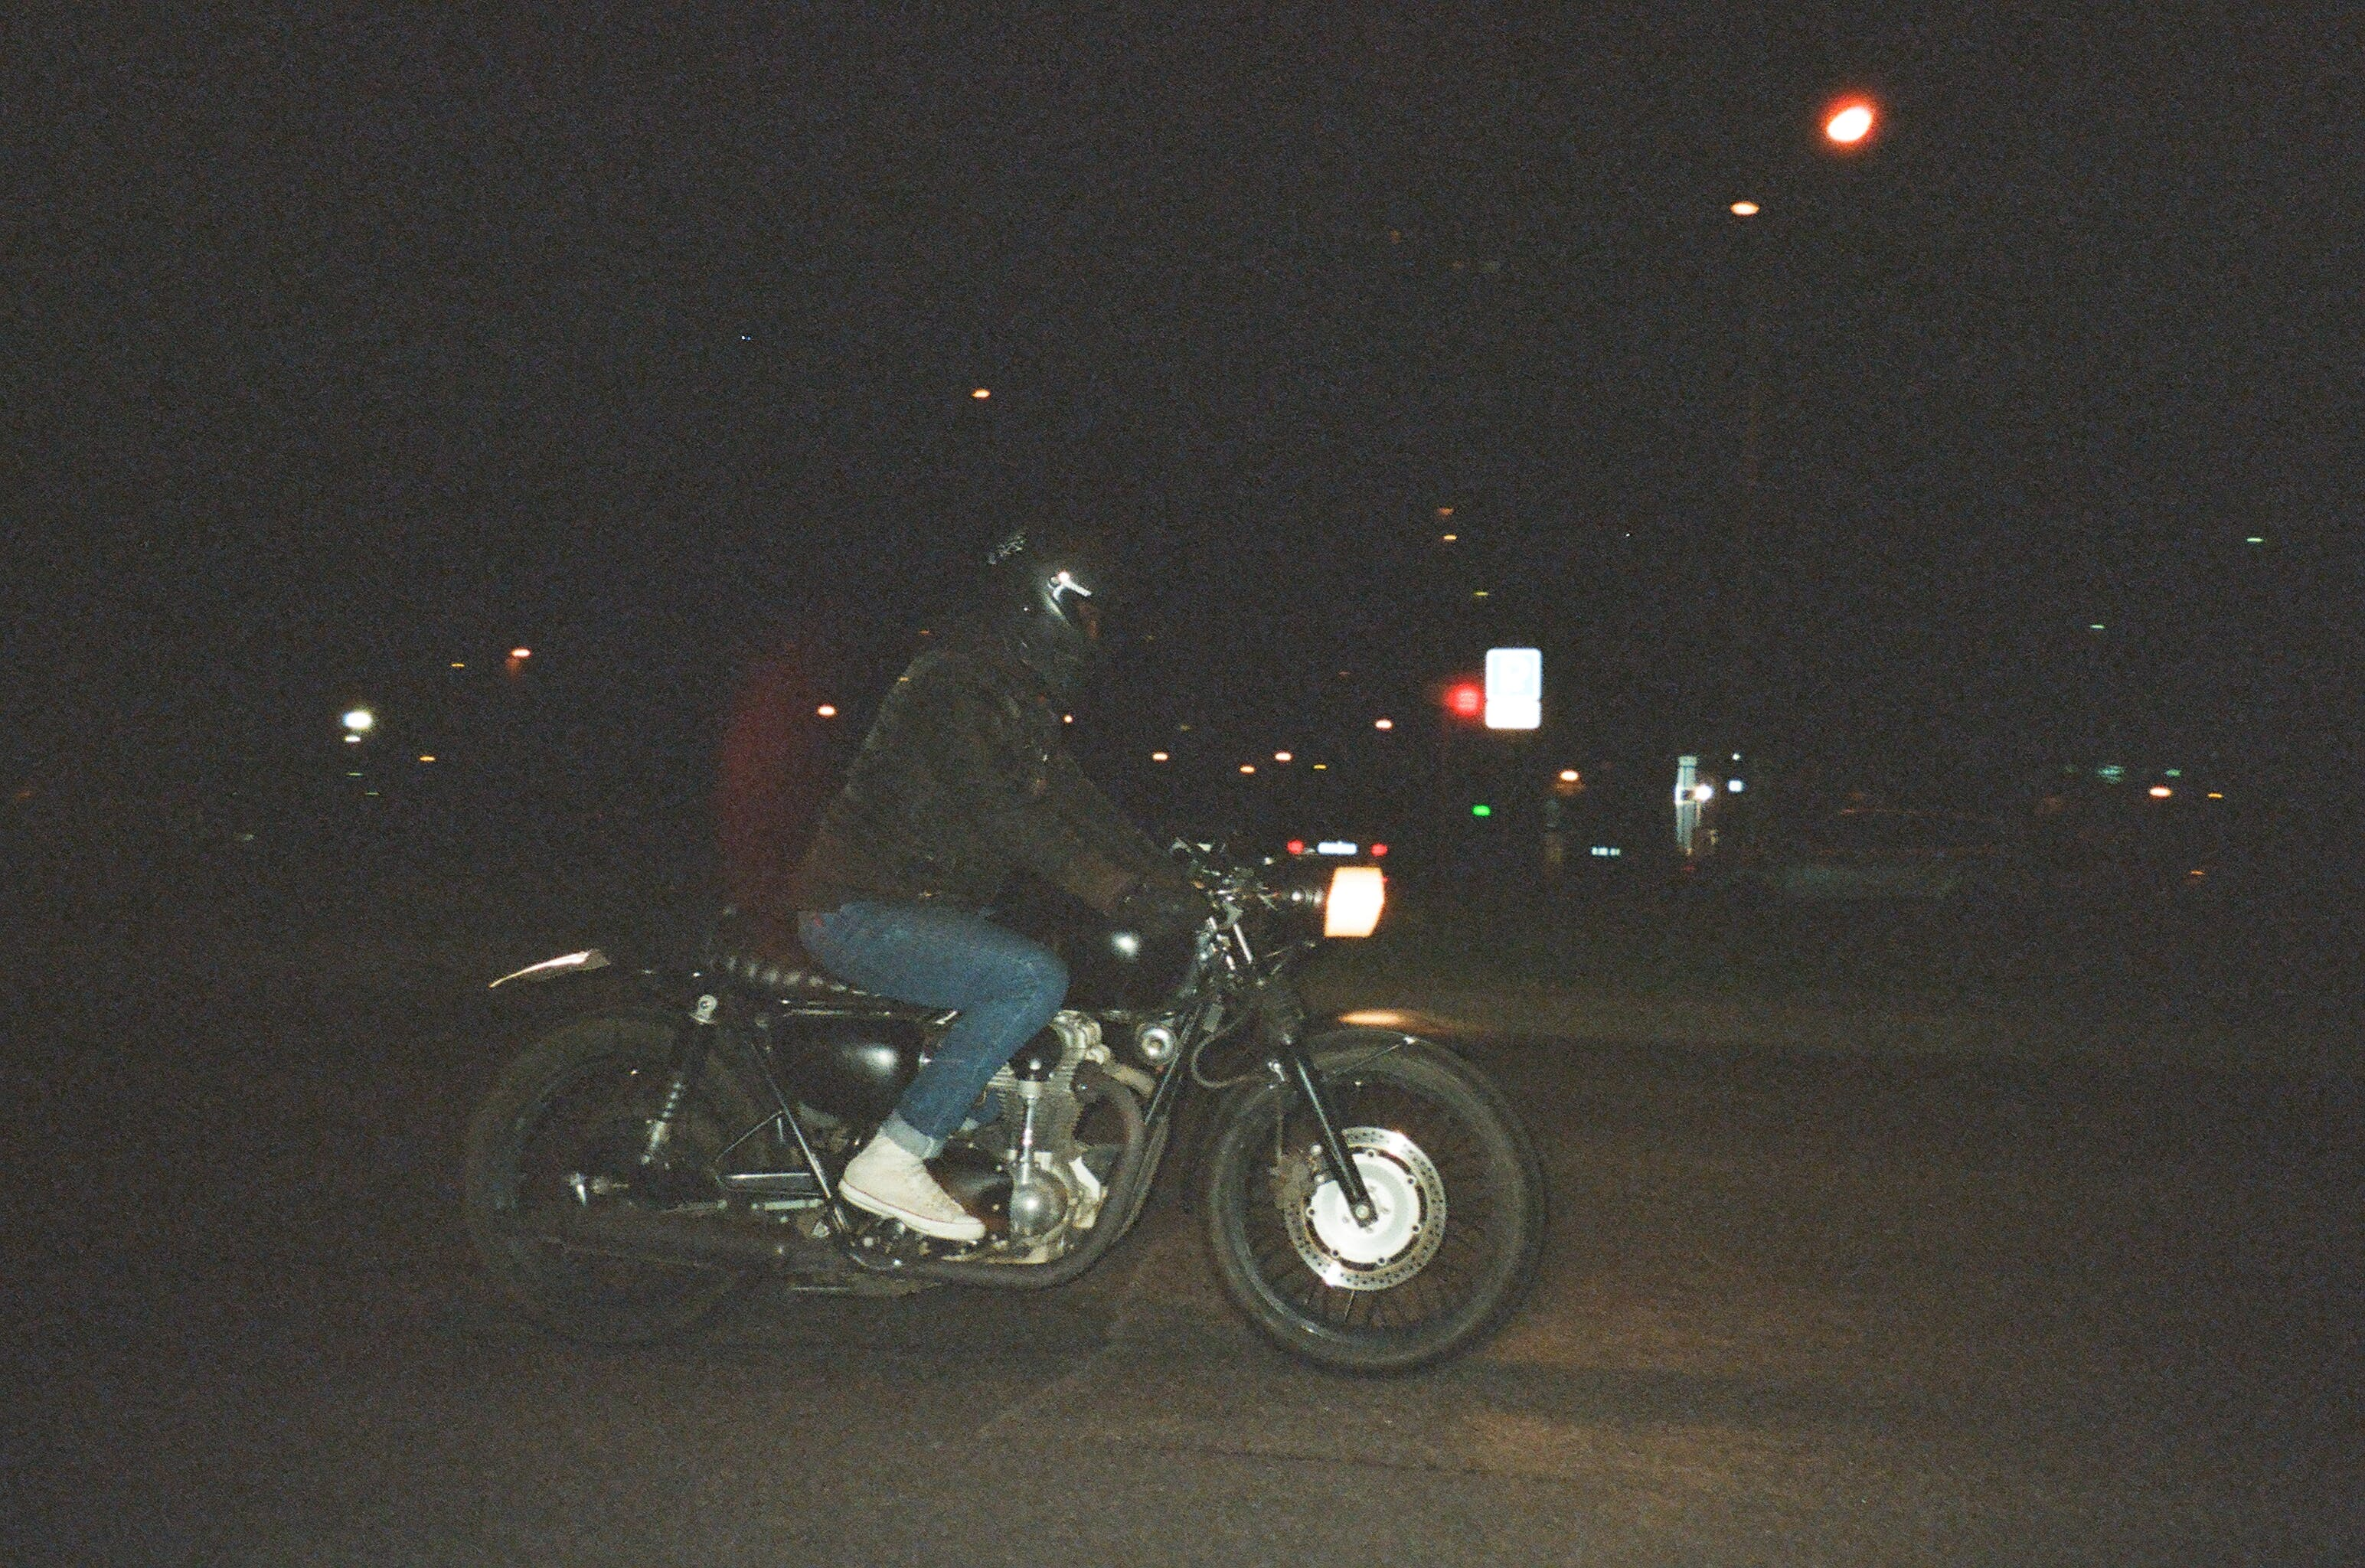 Person Riding on Motorcycle on Road during Nighttime